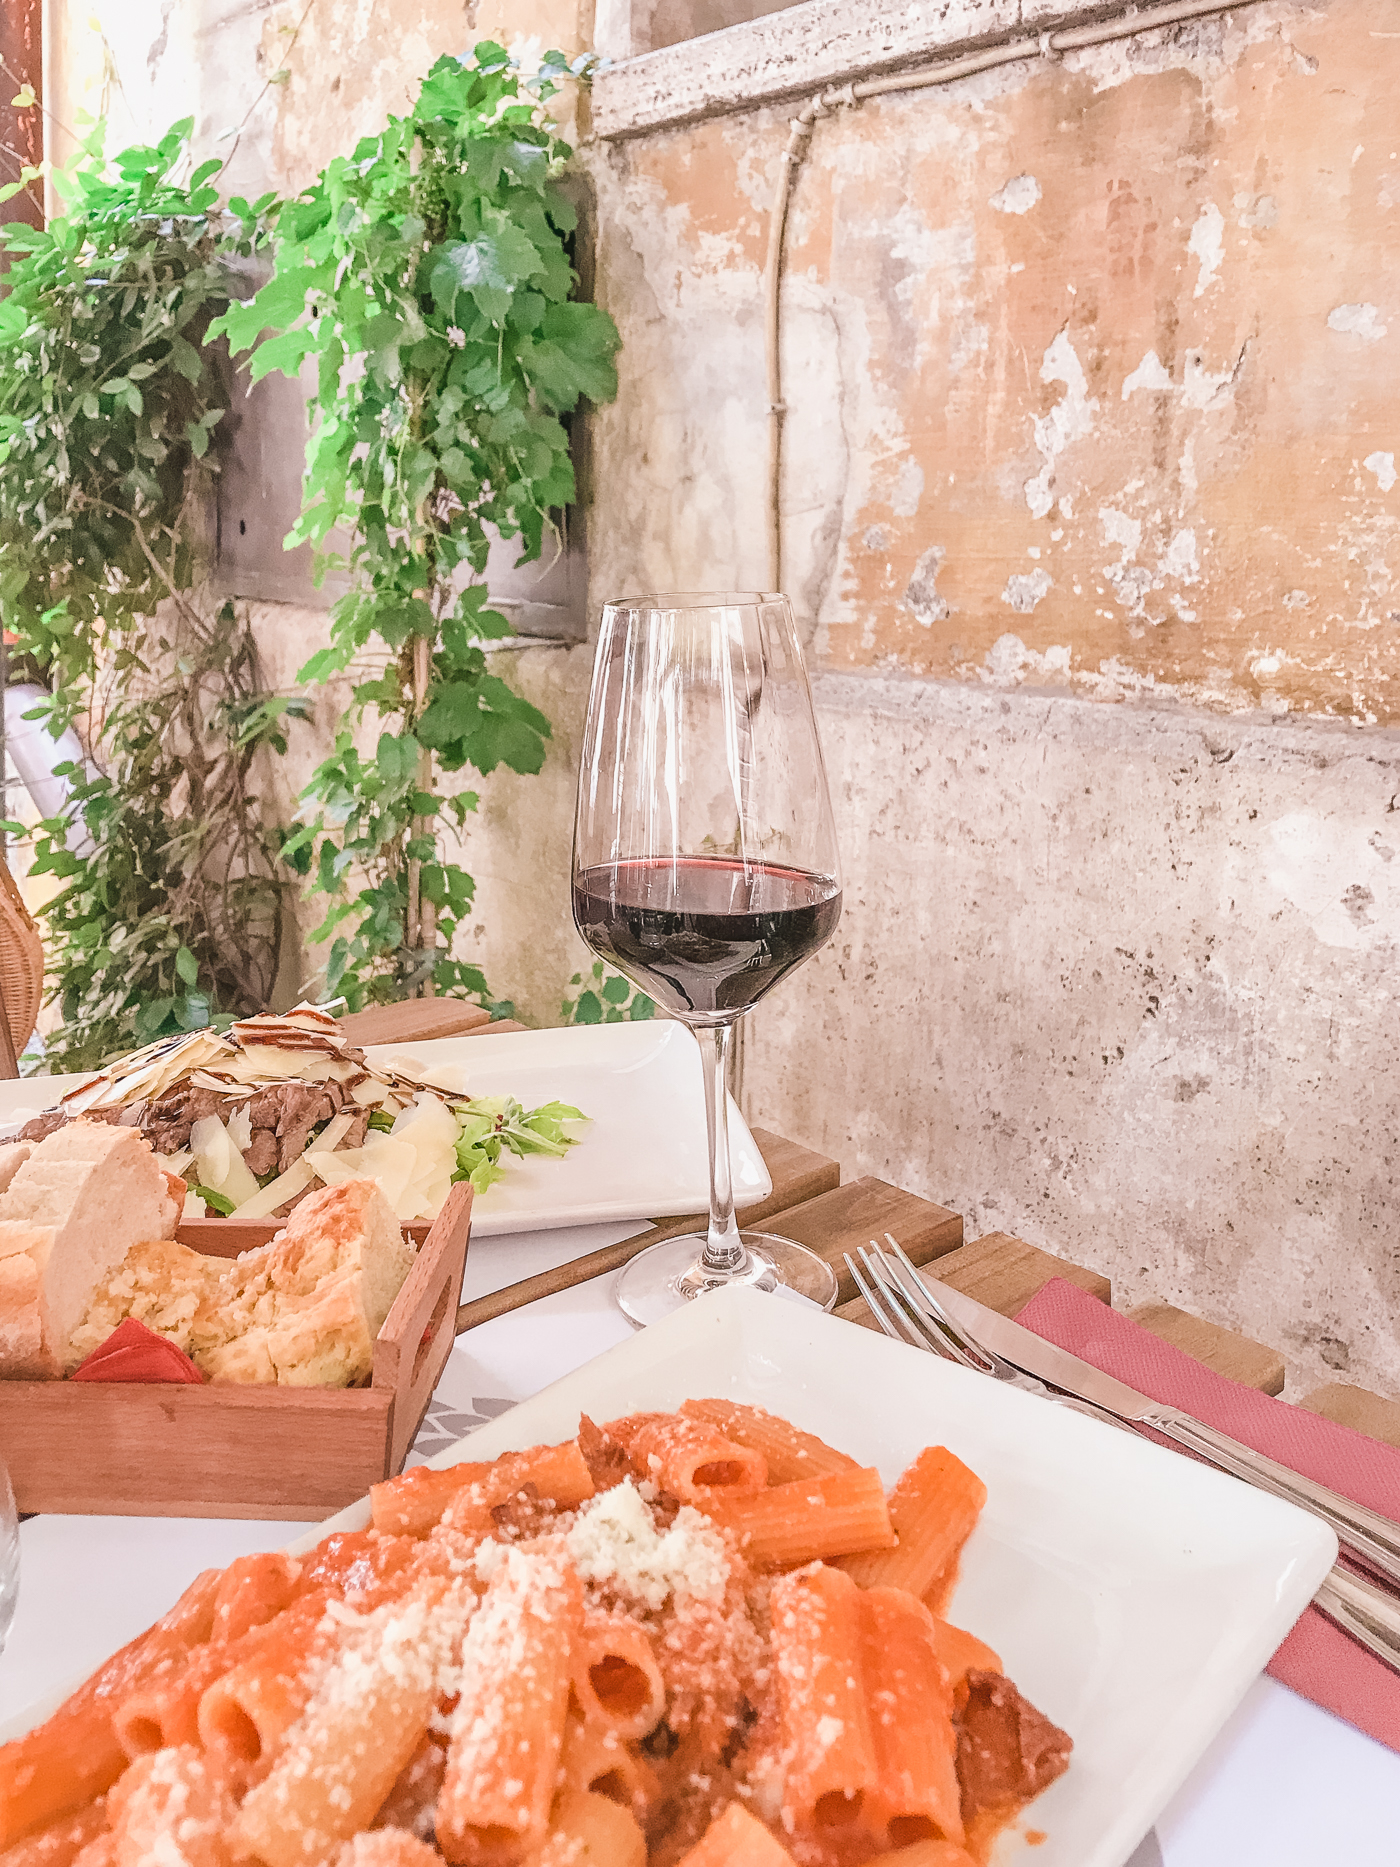 Ultimate Rome Restaurant Guide